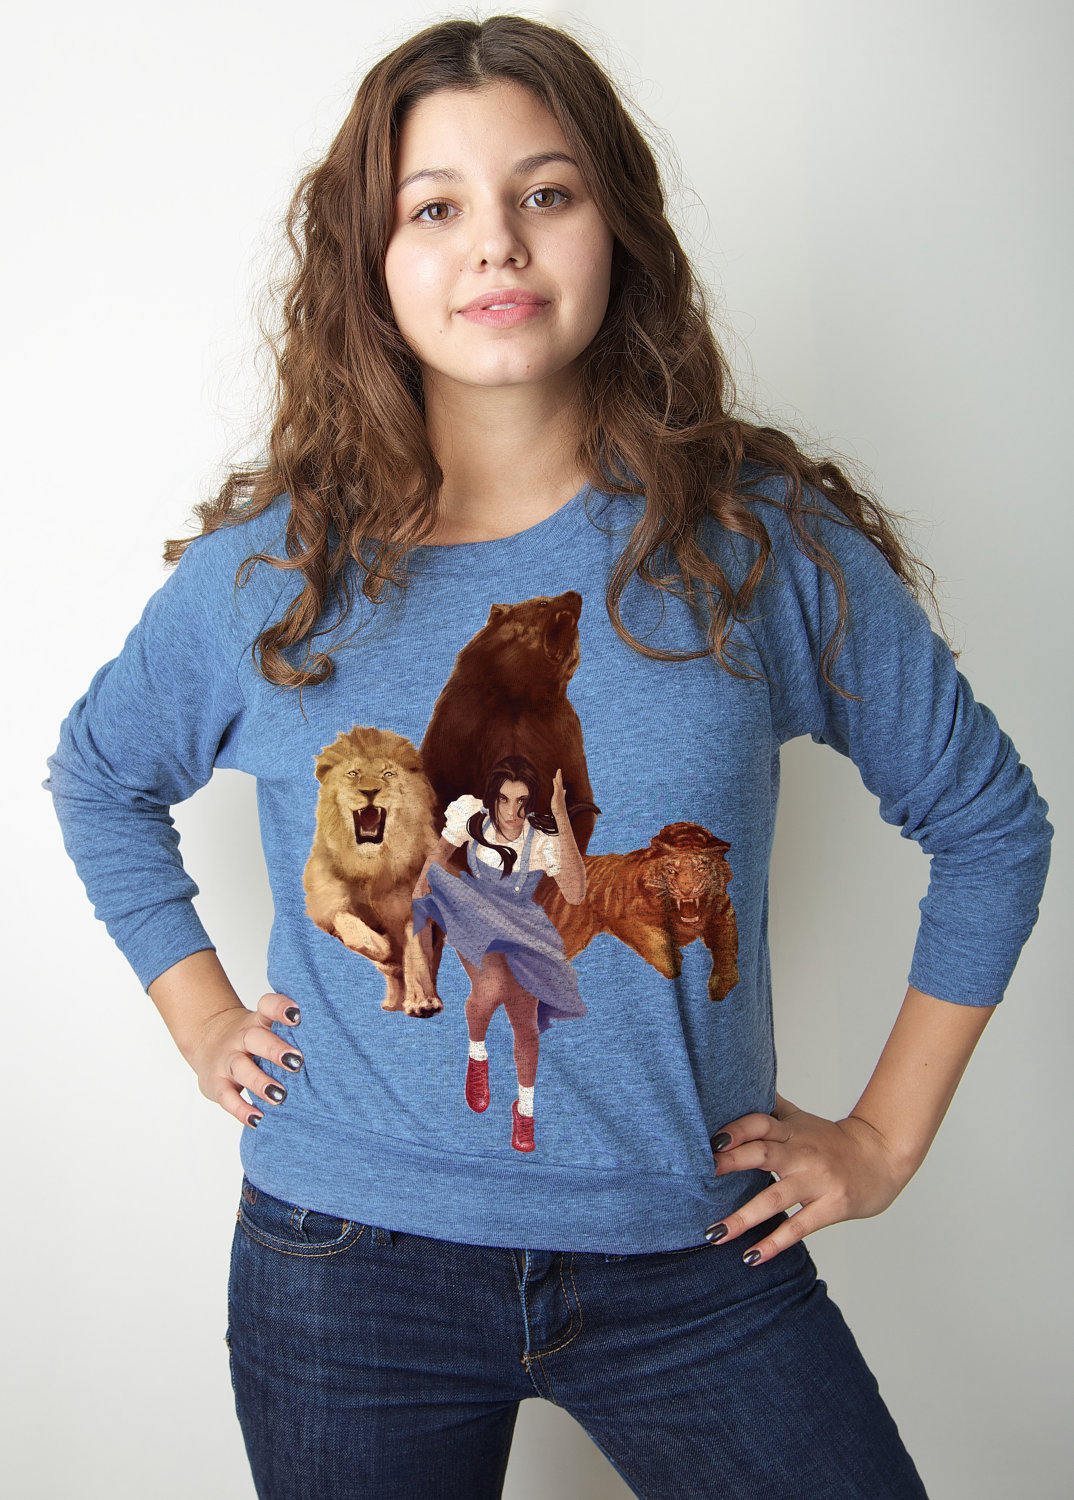 Wizard of Oz, American Apparel, Lion Tiger Bear OH Fxxx, Blue Pullover Available S-L